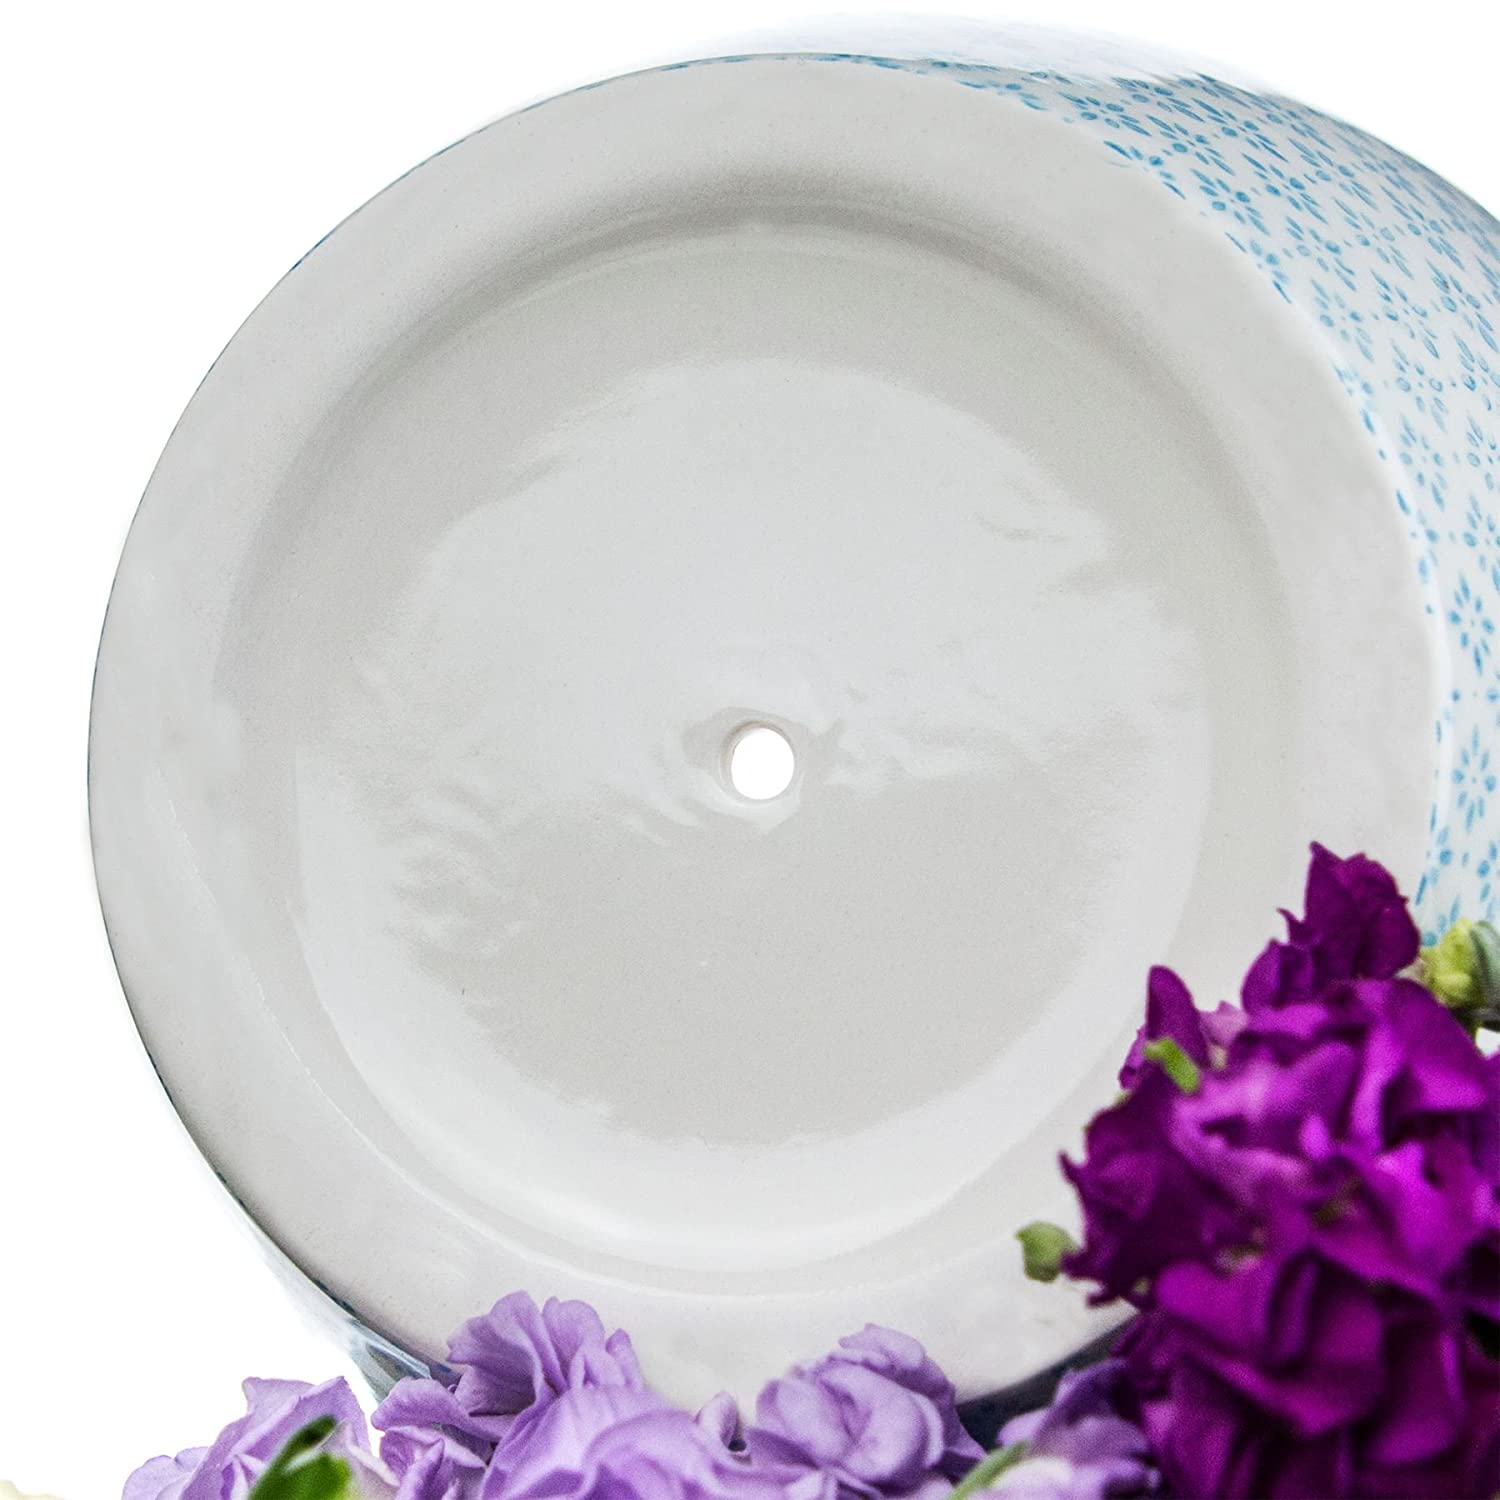 20cm Nicola Spring Porcelain Flower Pot With Drip Tray in Blue Print